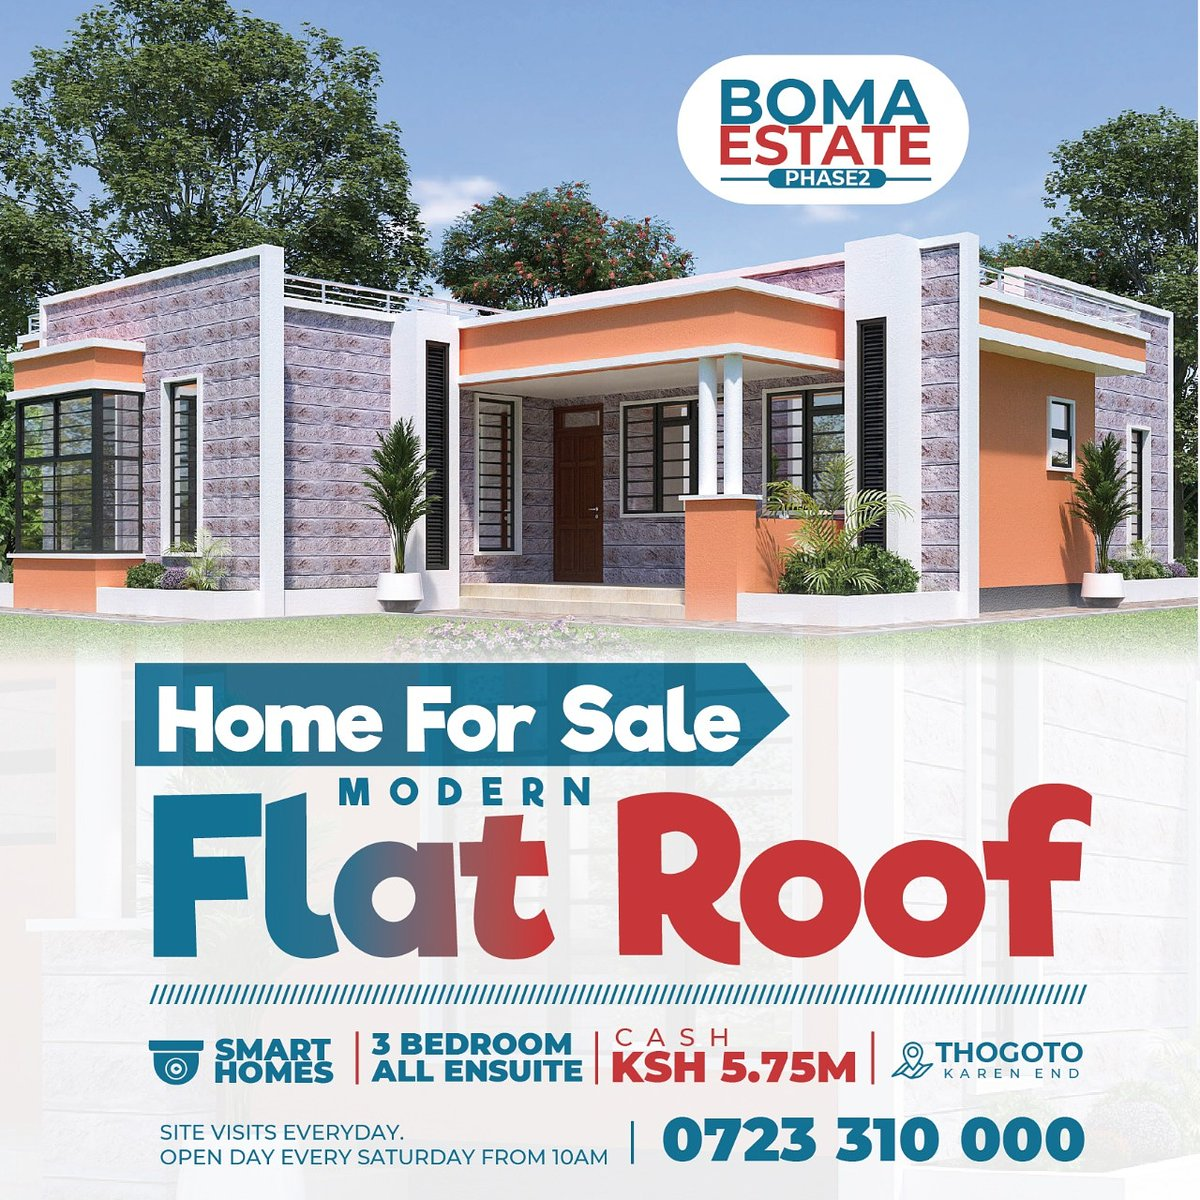 Home ownership provides a stable place to live! Be part of this master development in Thogoto, Karen End, Kikuyu area. own this 3 bedroom flat roof bungalow at Kes. 5.75M cash price. Installments option available too. Call 0723 310 000  #housesforsaleinkenya  #tuesdaymotivations